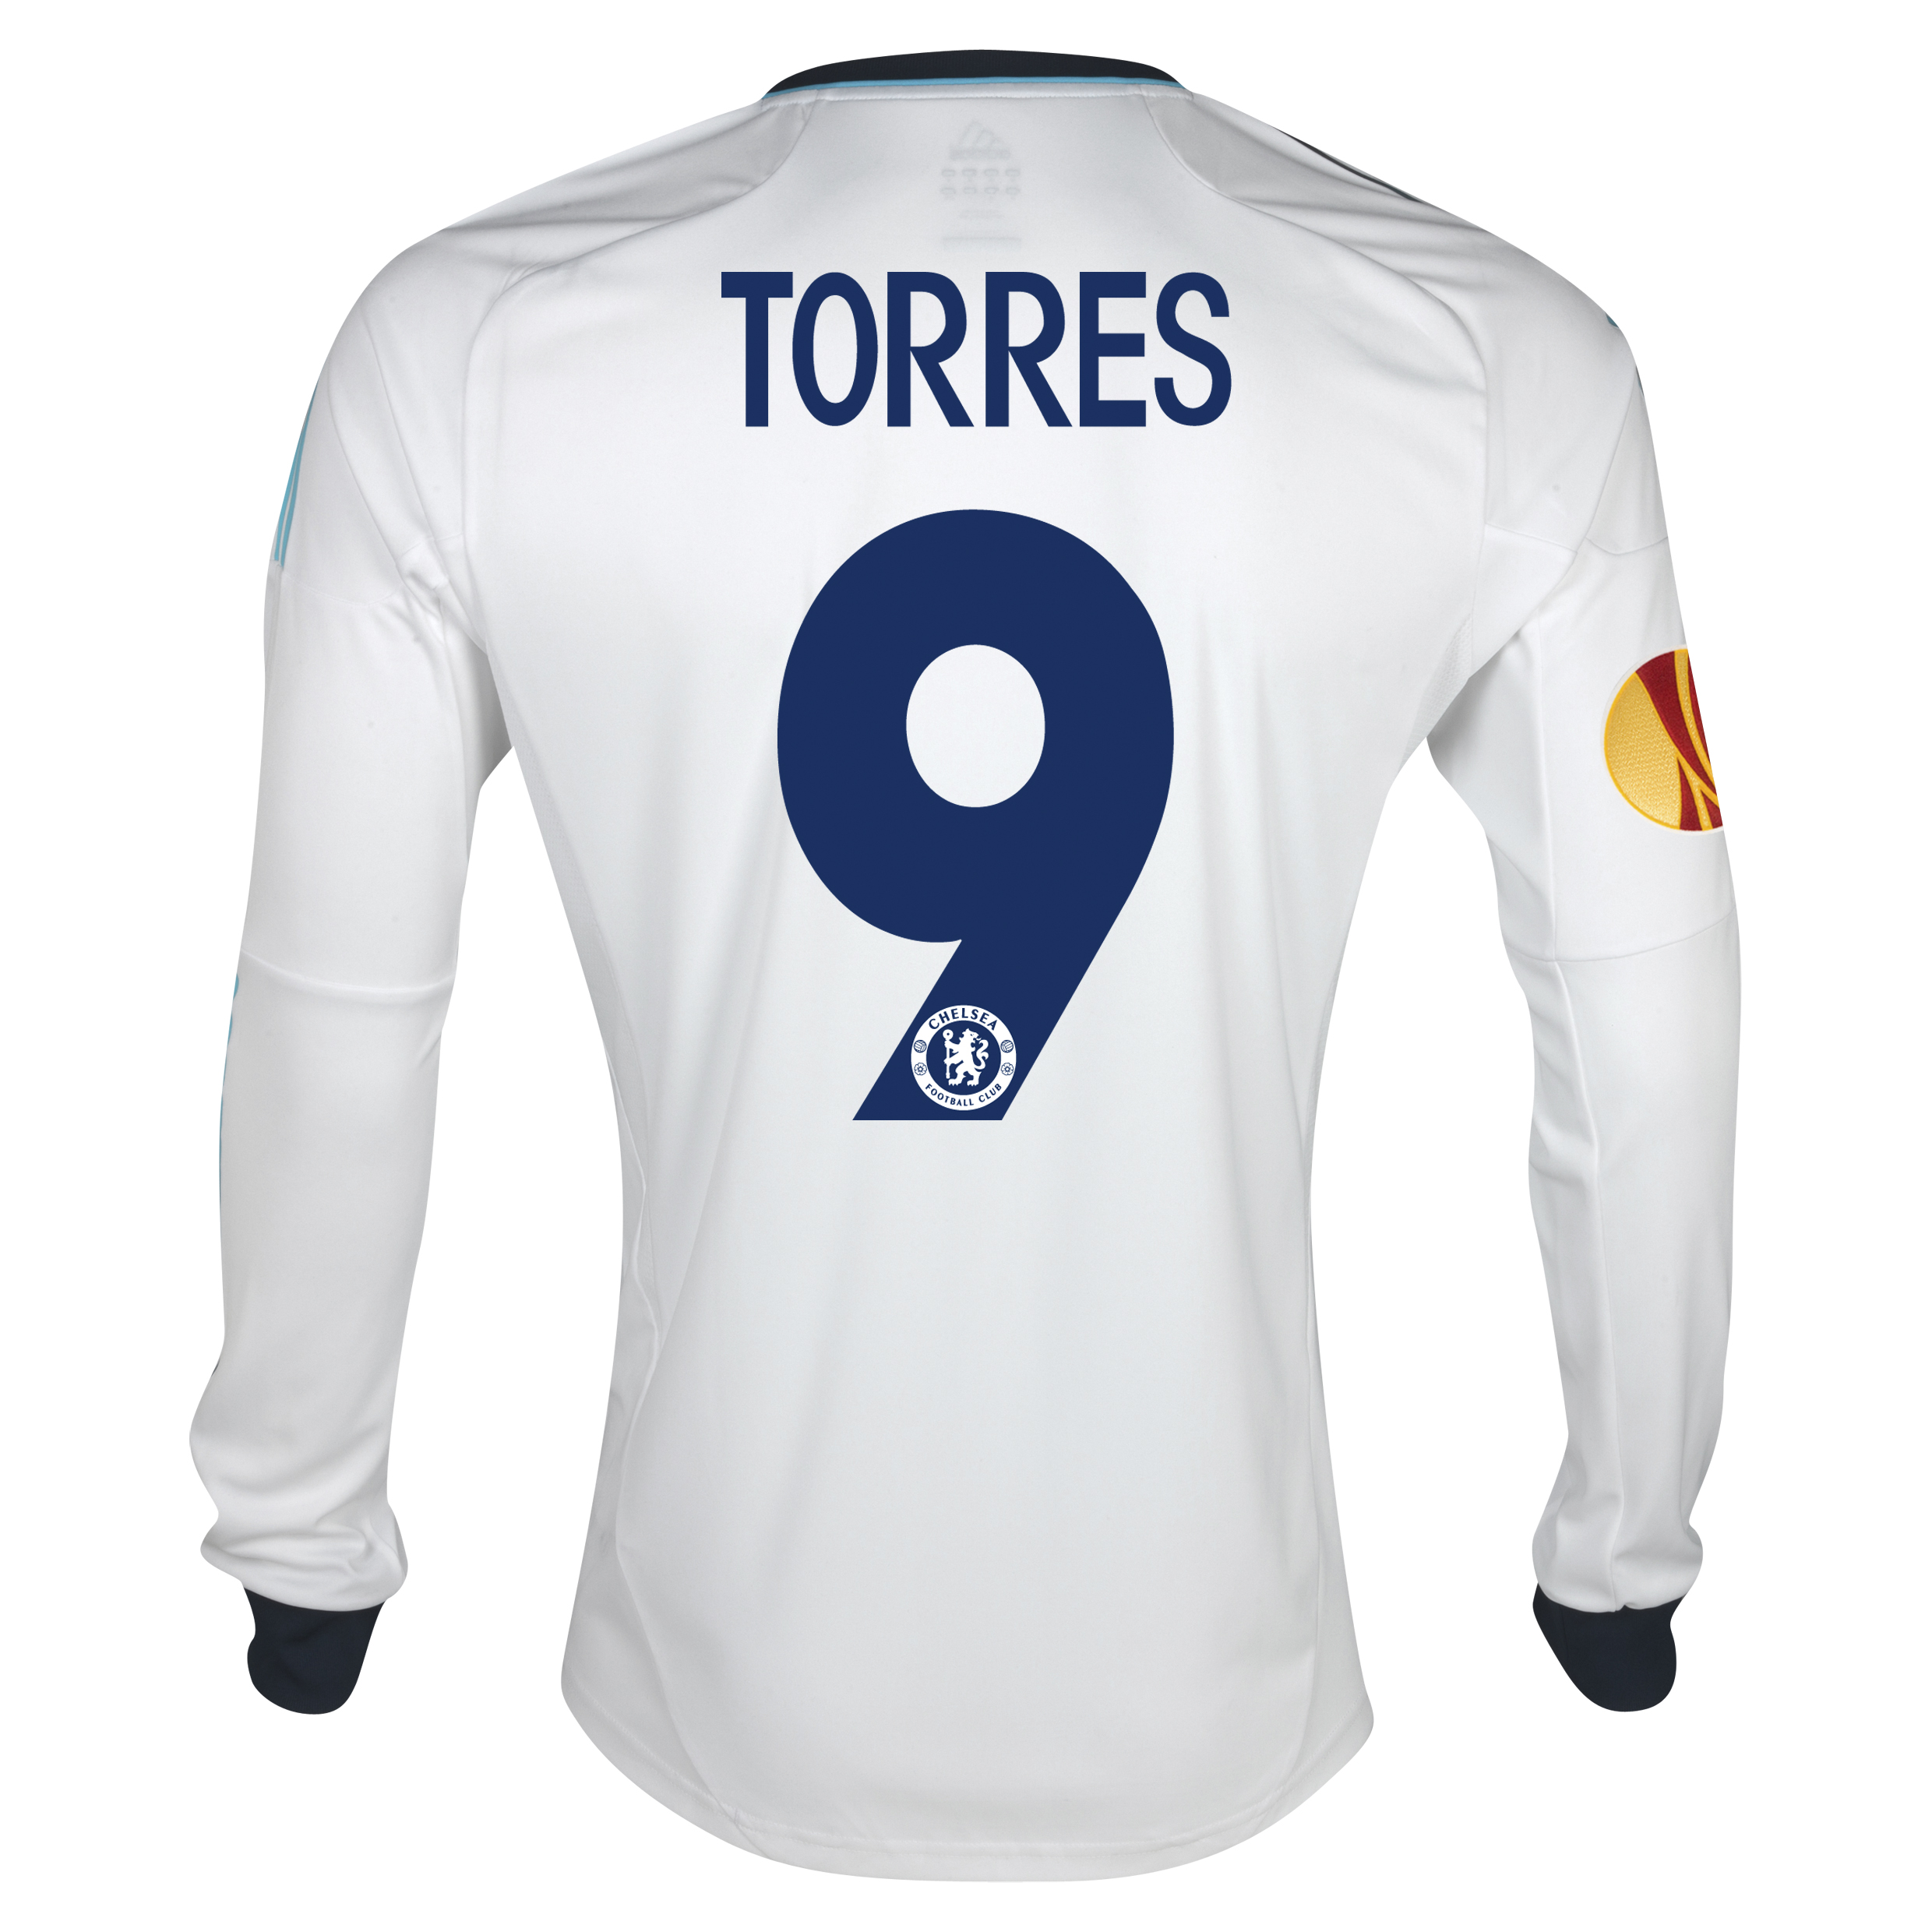 Chelsea UEFA Europa League Away Shirt 2012/13 - Long Sleeved with Torres 9 printing Including Europa Badge